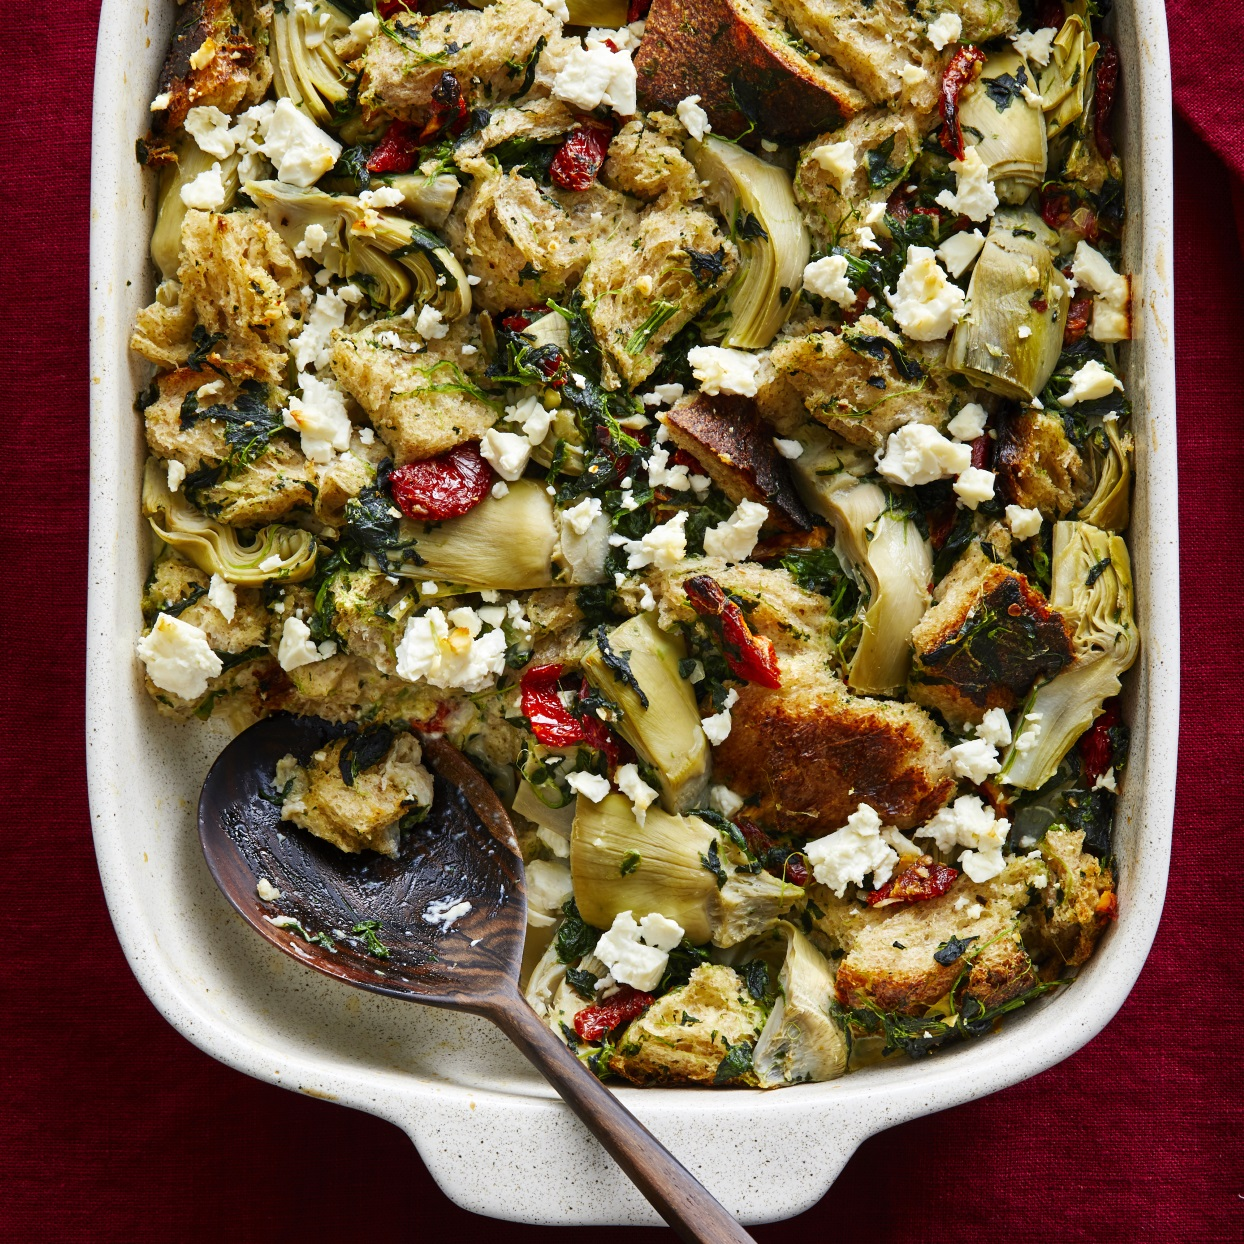 Enjoy this Mediterranean-inspired Christmas-morning casserole while you open presents. Breakfast casseroles are perfect for when you have a crowd to feed, and you can make the prep even quicker by tearing the bread into pieces the night before. Source: EatingWell.com, November 2019